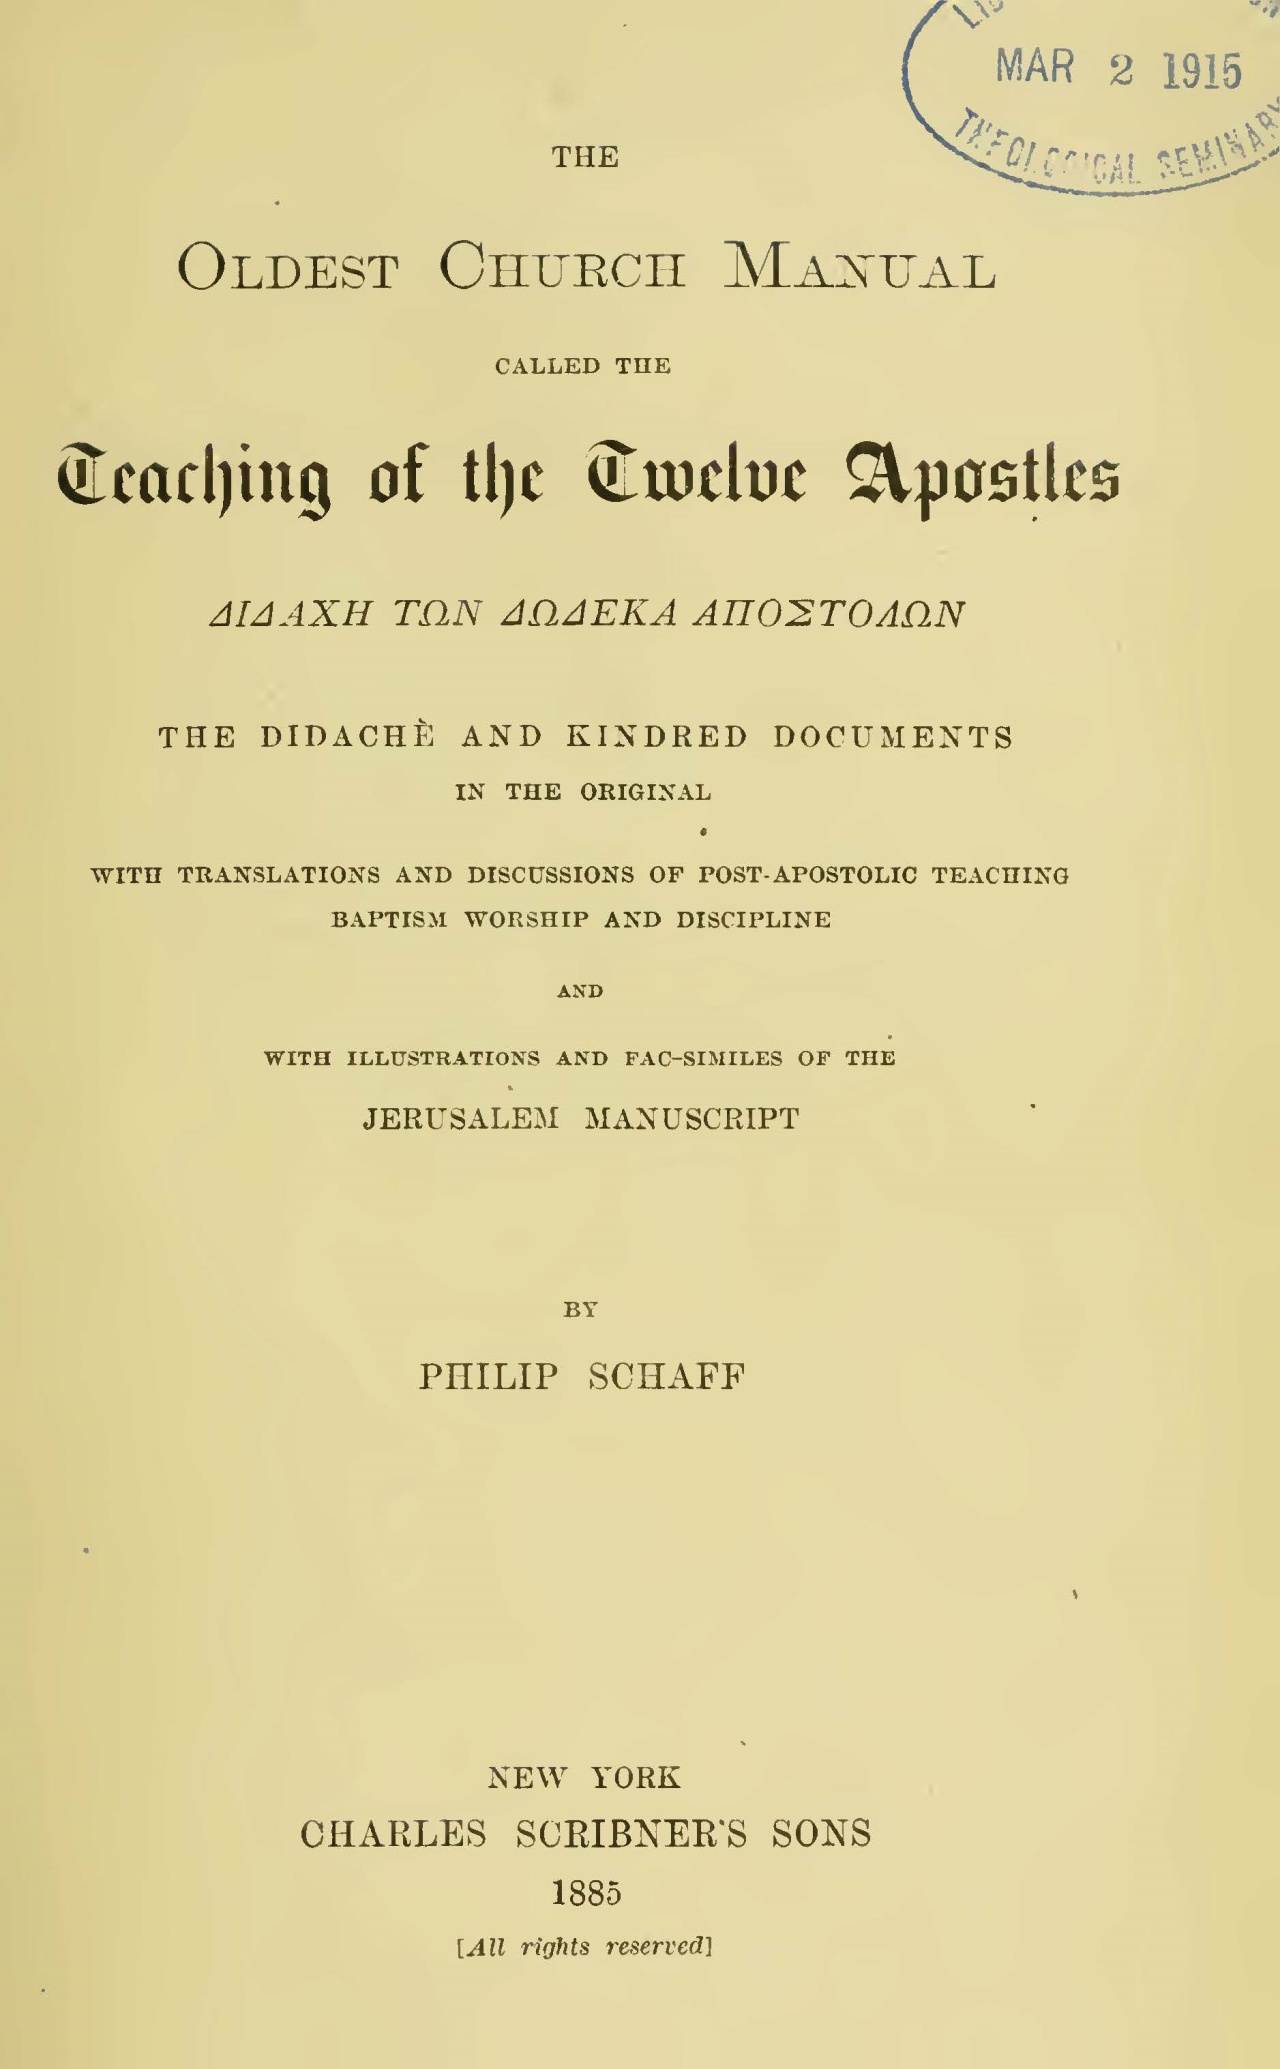 Schaff, Philip, The Oldest Church Manual Title Page.jpg